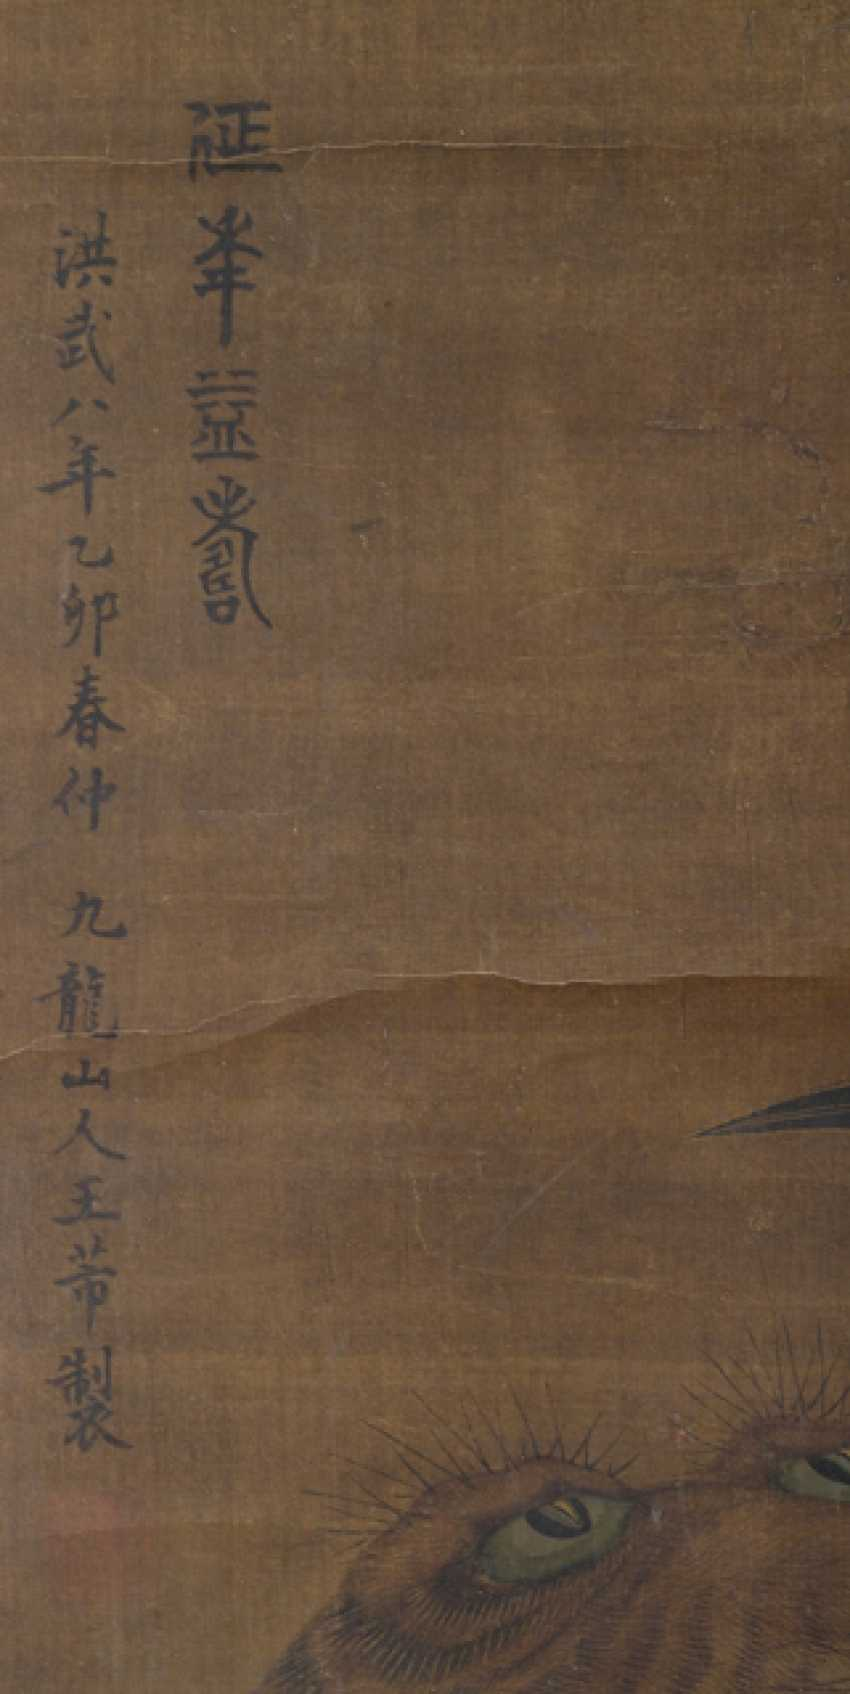 Painting in the style of Wang Fu (1362-1416) and two anonymous paintings - photo 5